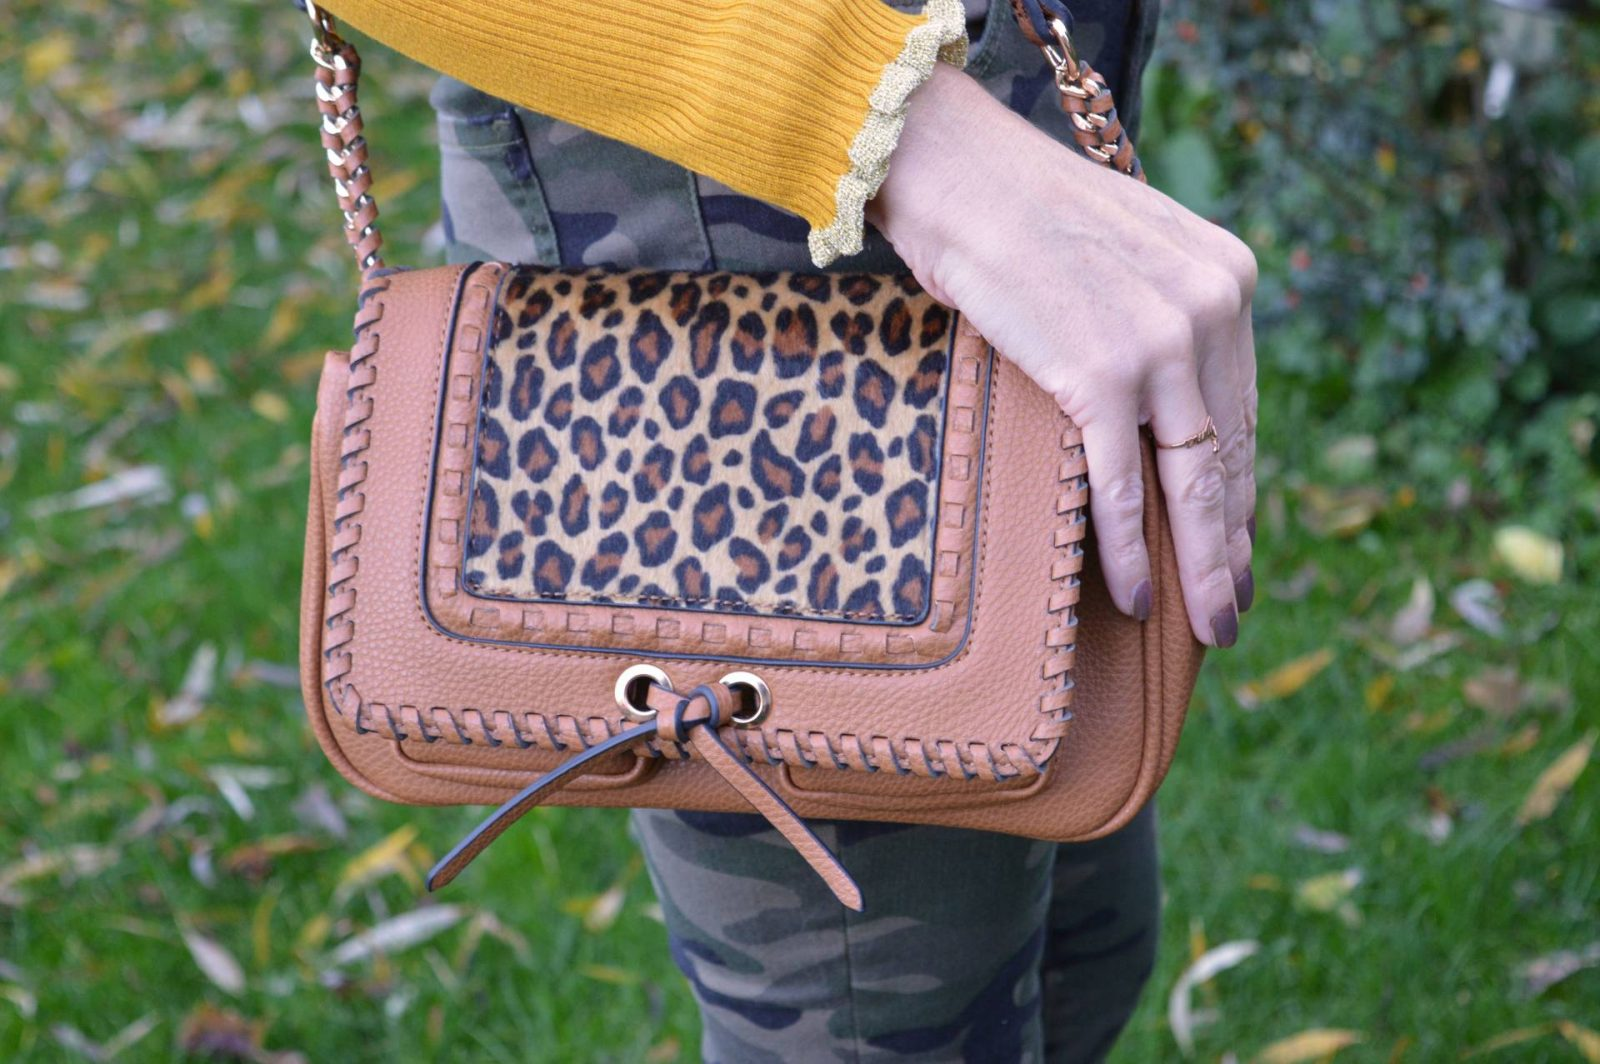 Style Not Age Collective - Keen as Mustard, Scottage tan and leopard print bag